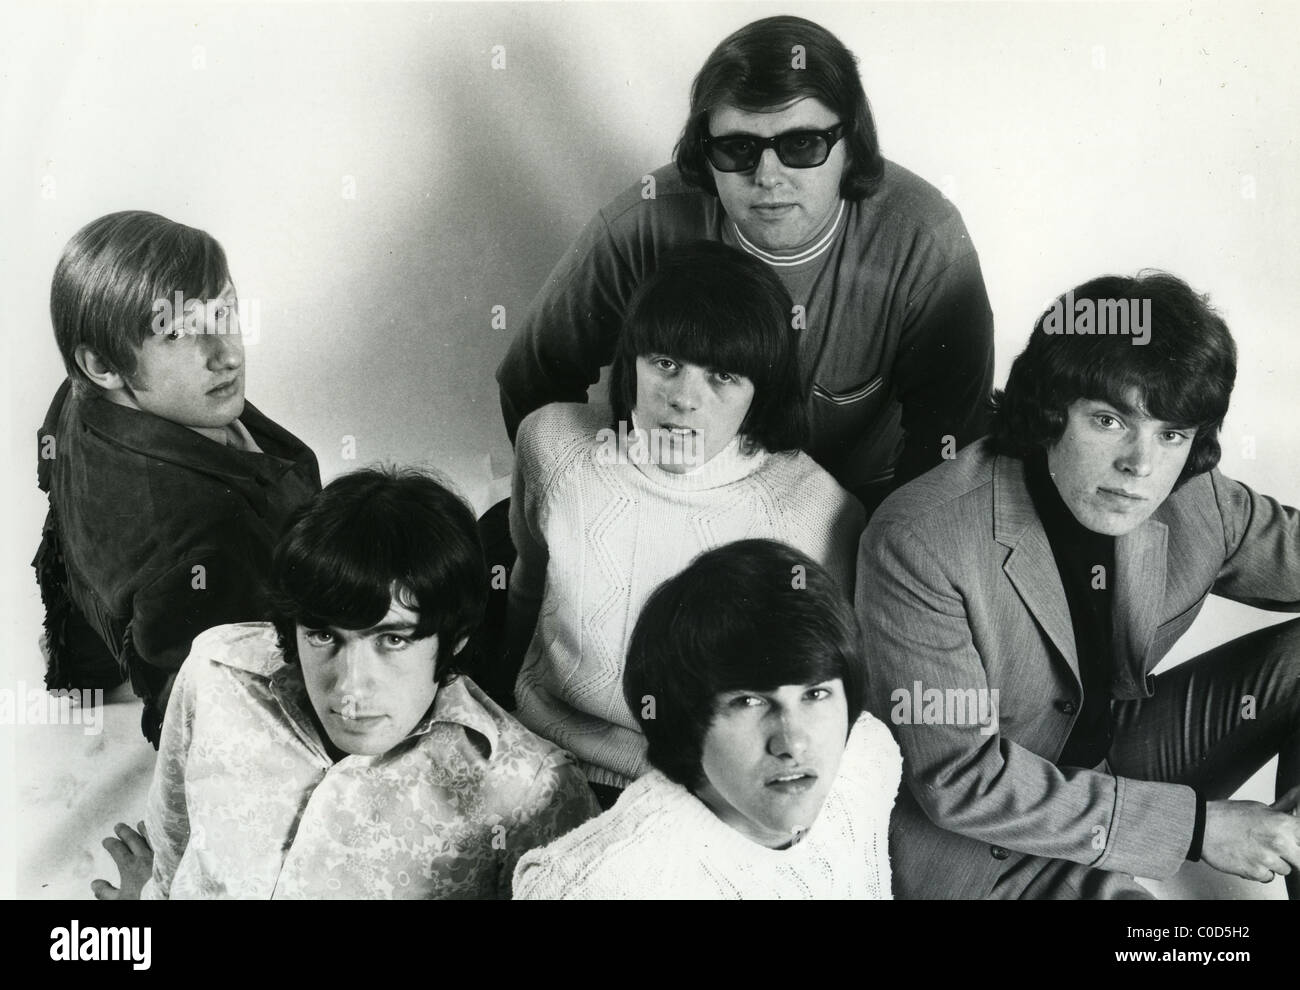 TONY RIVERS AND THE CASTAWAYS  Promotional photo of 60s UK pop group - Stock Image